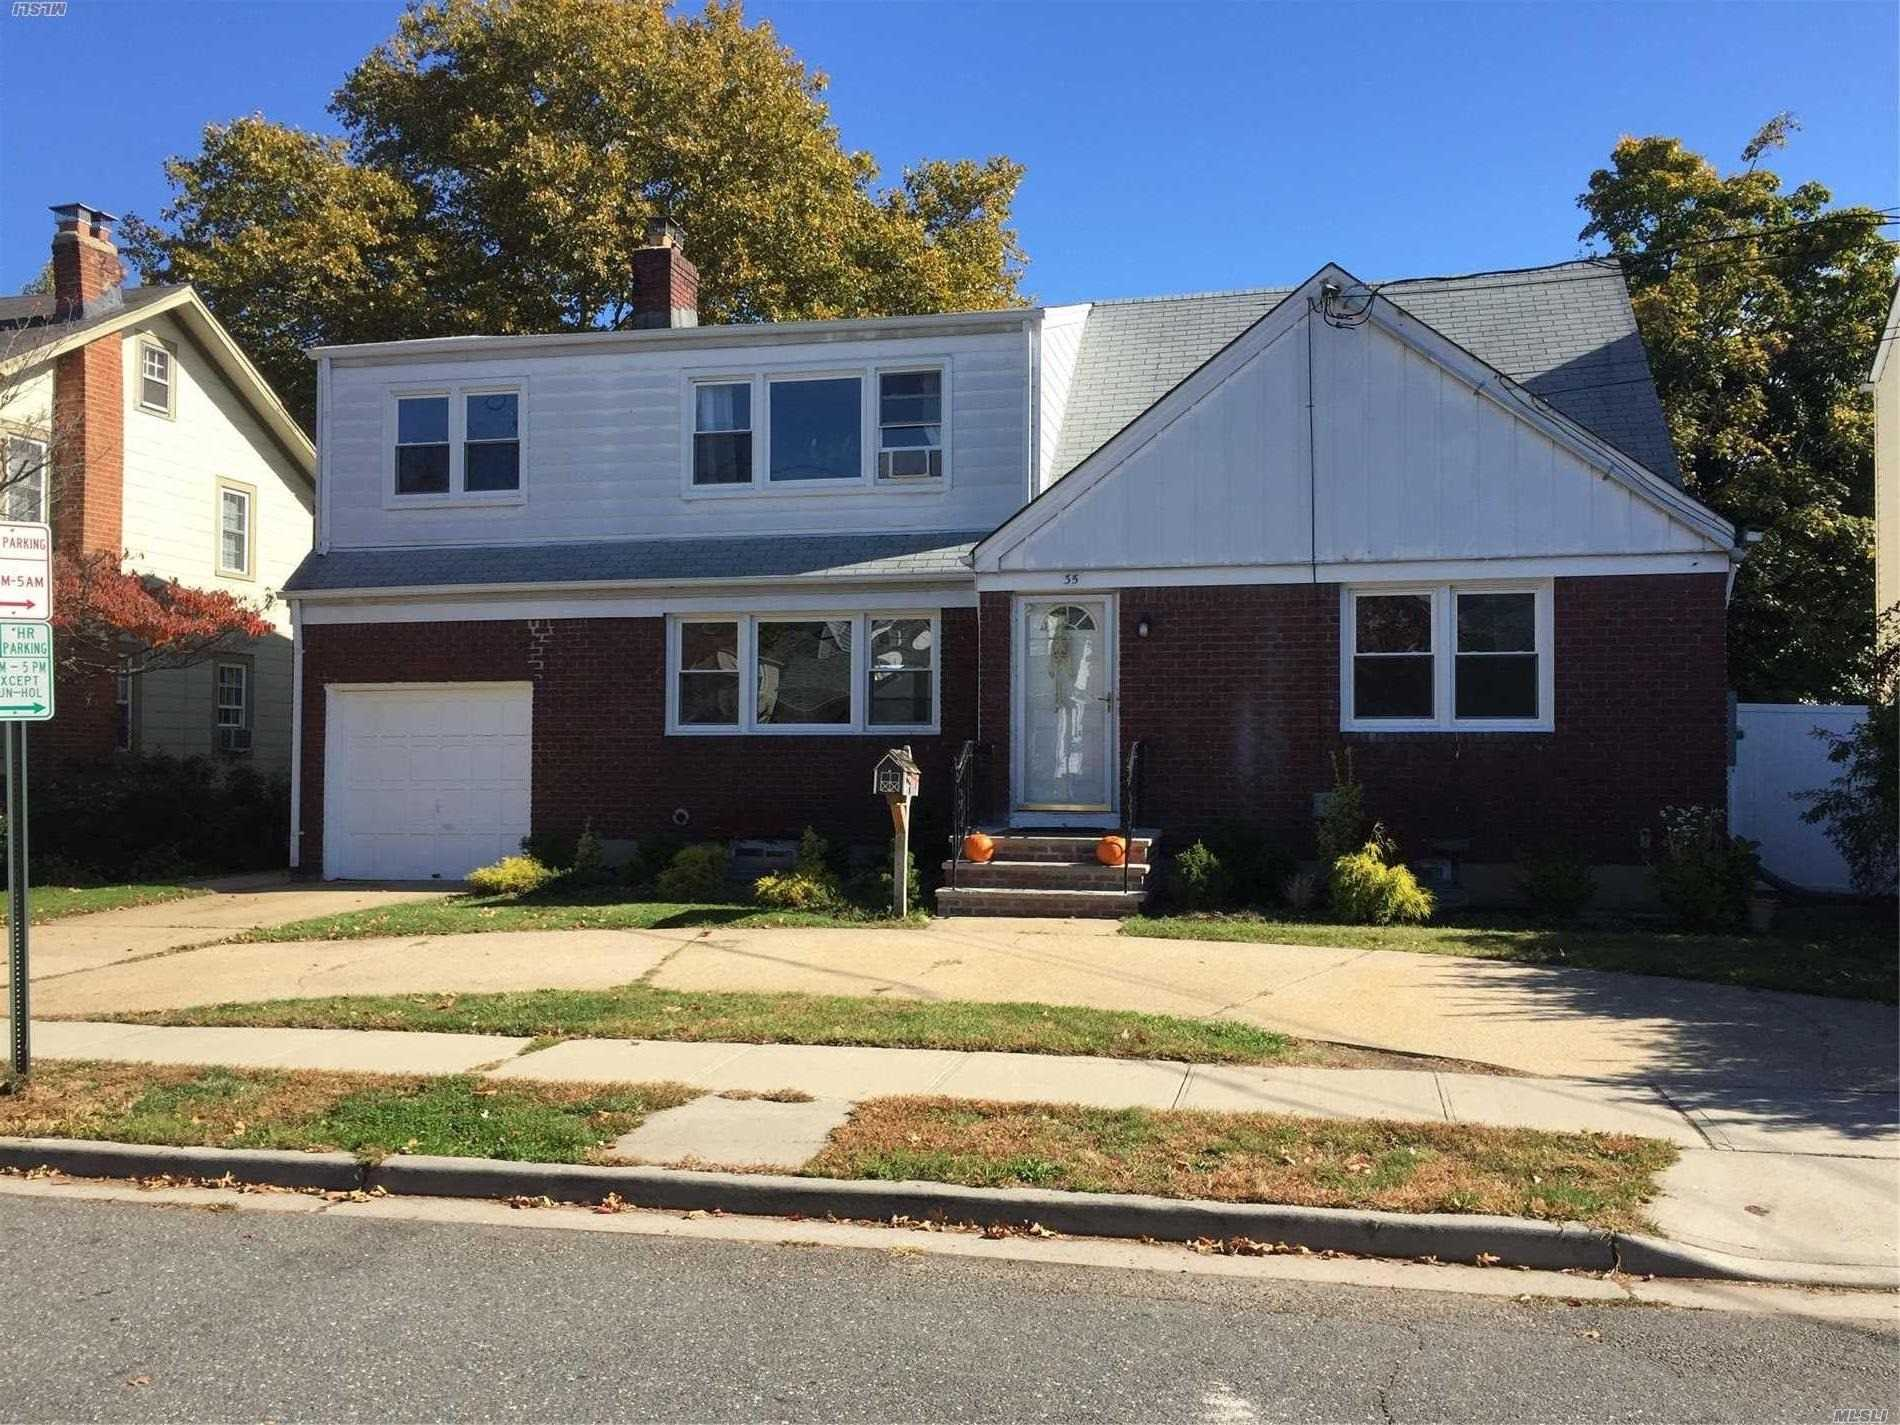 2 bedroom, 1 bath, Living room, Dining area, 1 bath and EIK. Access to basement storage room, washer and dryer. One parking space on driveway.